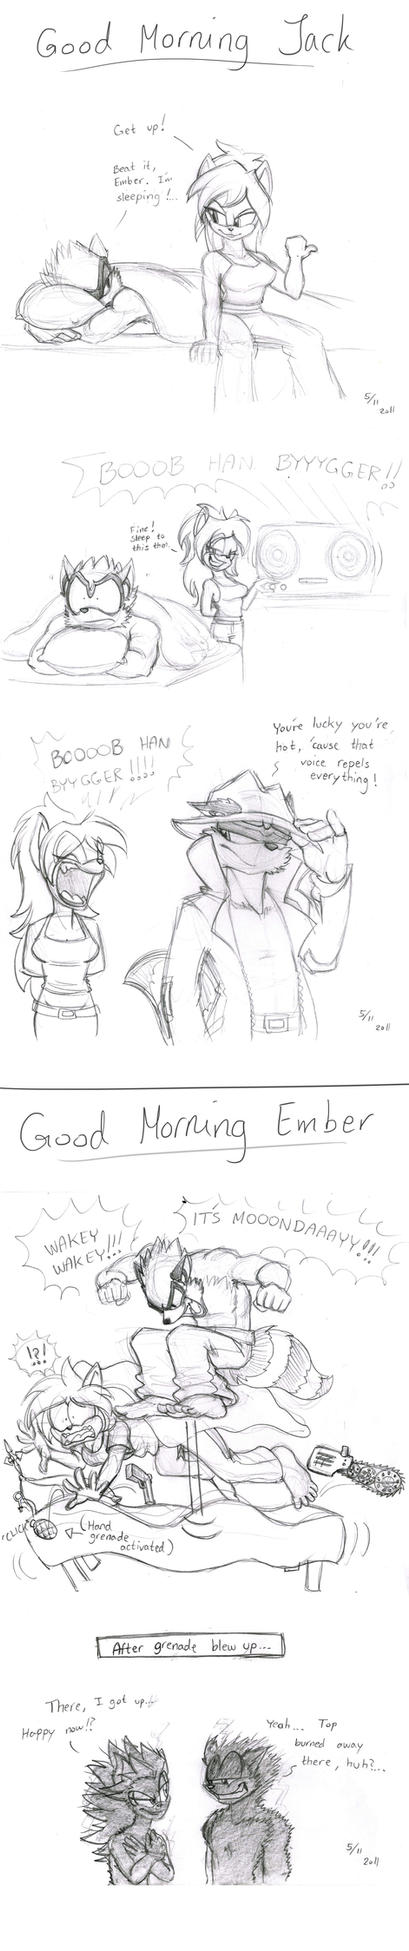 Good Morning Jack and Ember by Frankyding90